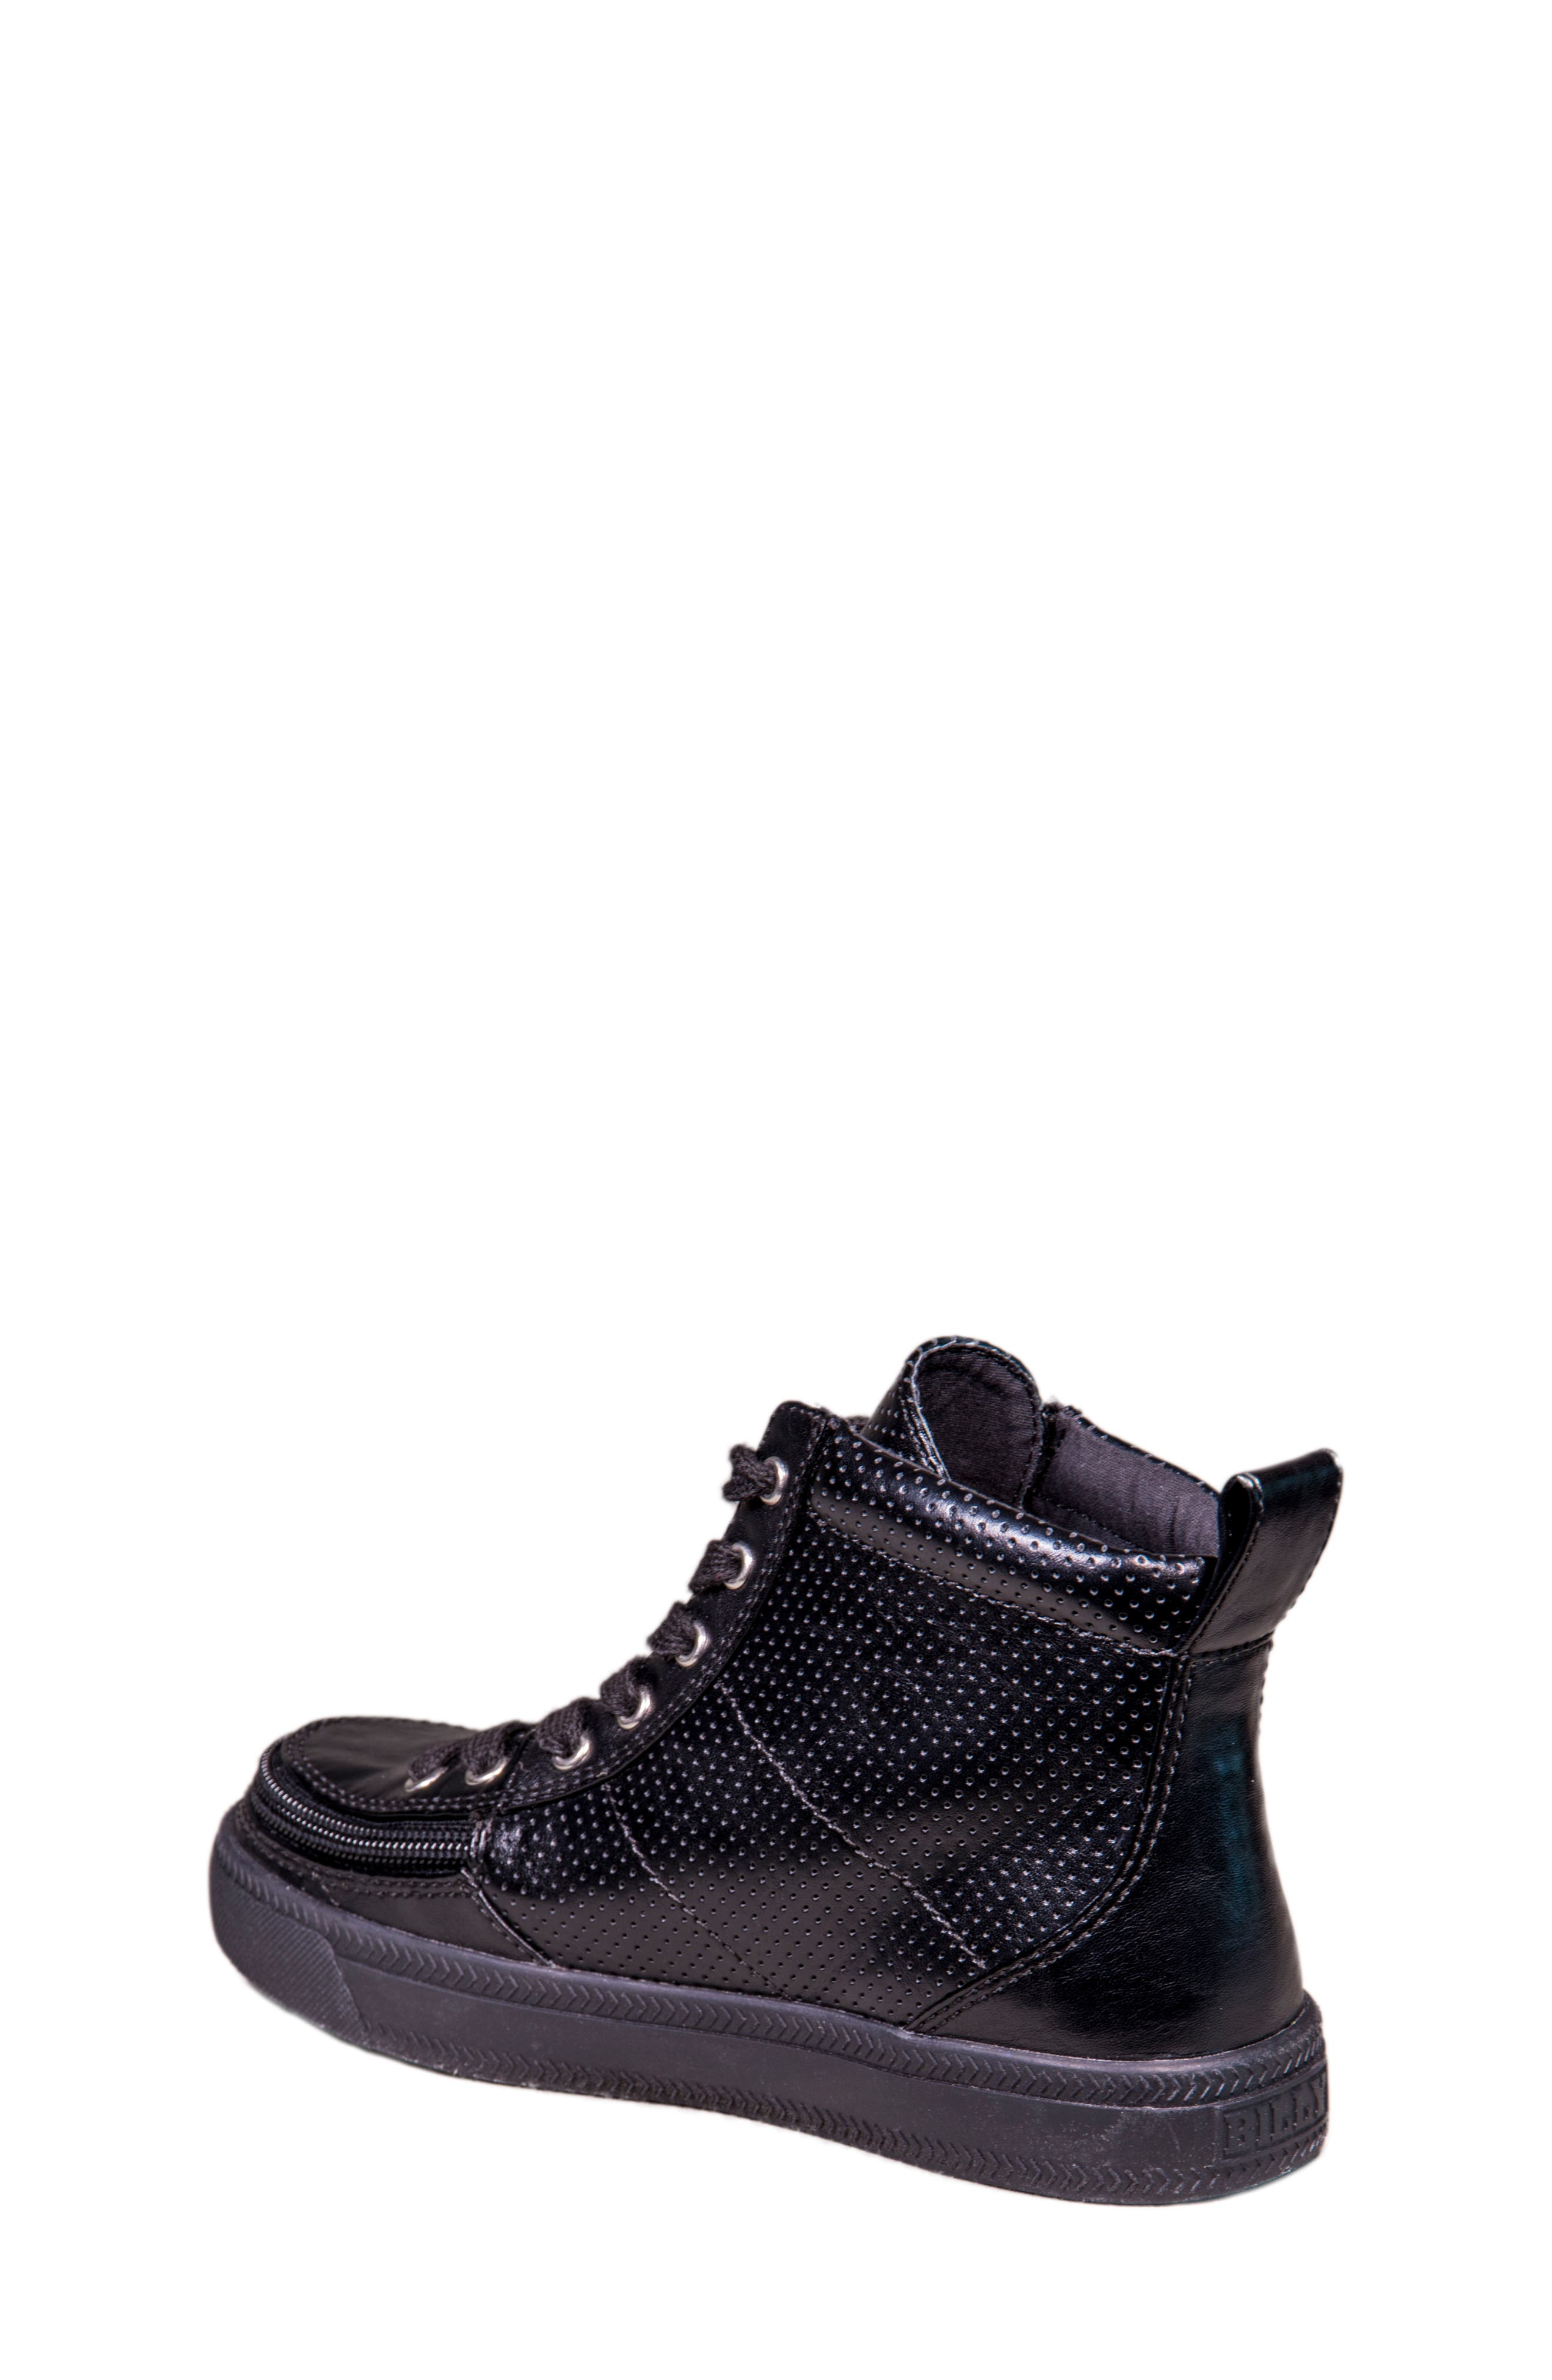 Zip Around Perforated High Top Sneaker,                             Alternate thumbnail 2, color,                             001